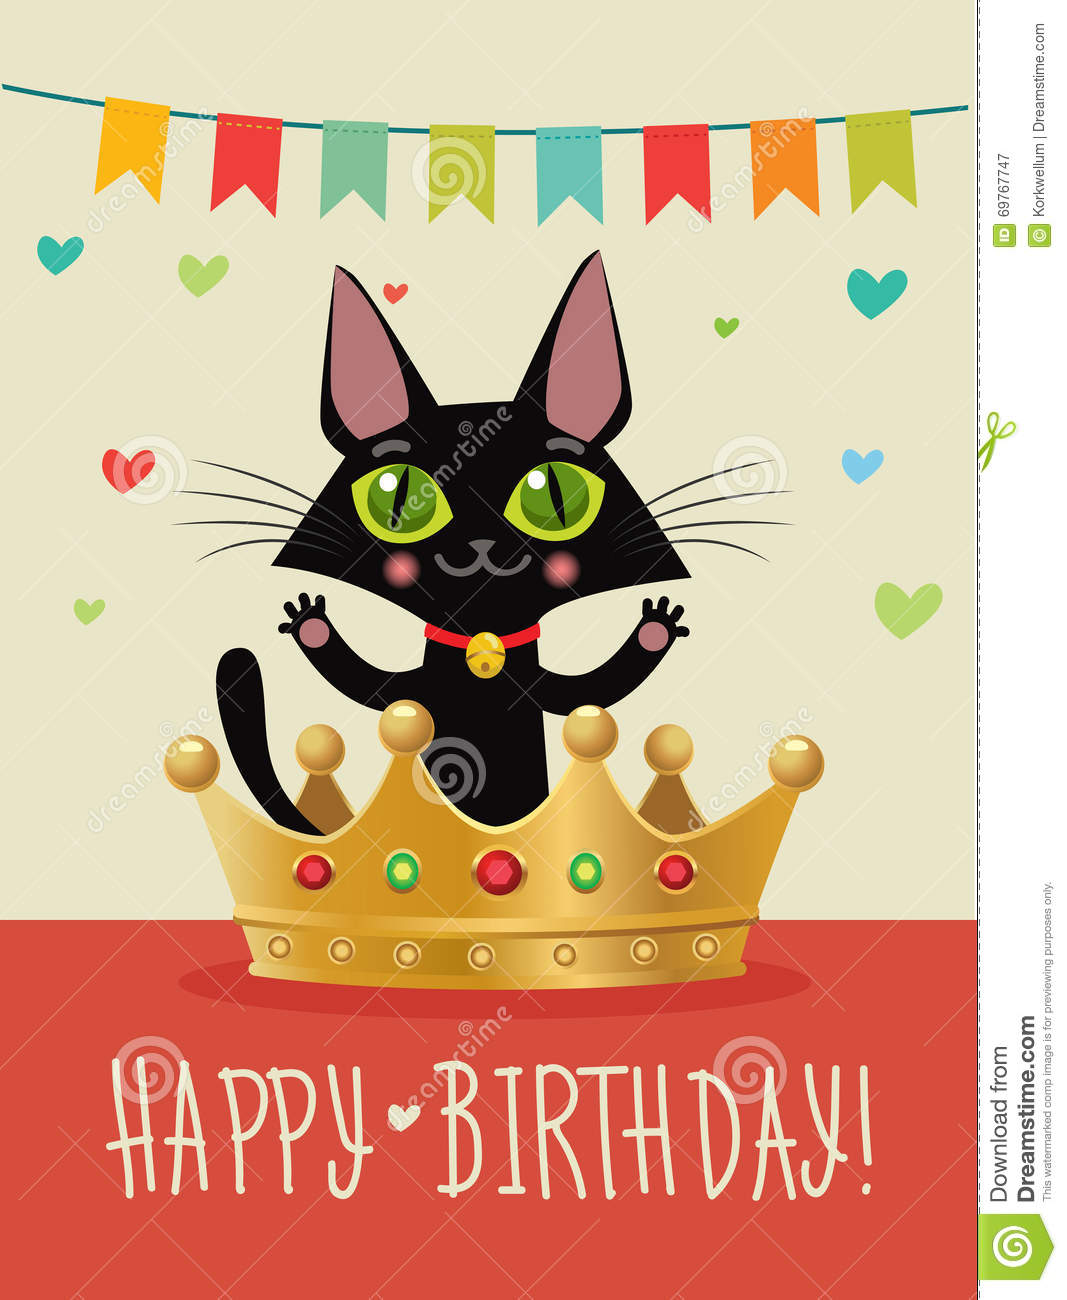 Happy Birthday To You Card With Funny Black Cat And Gold Crown Wish Humor